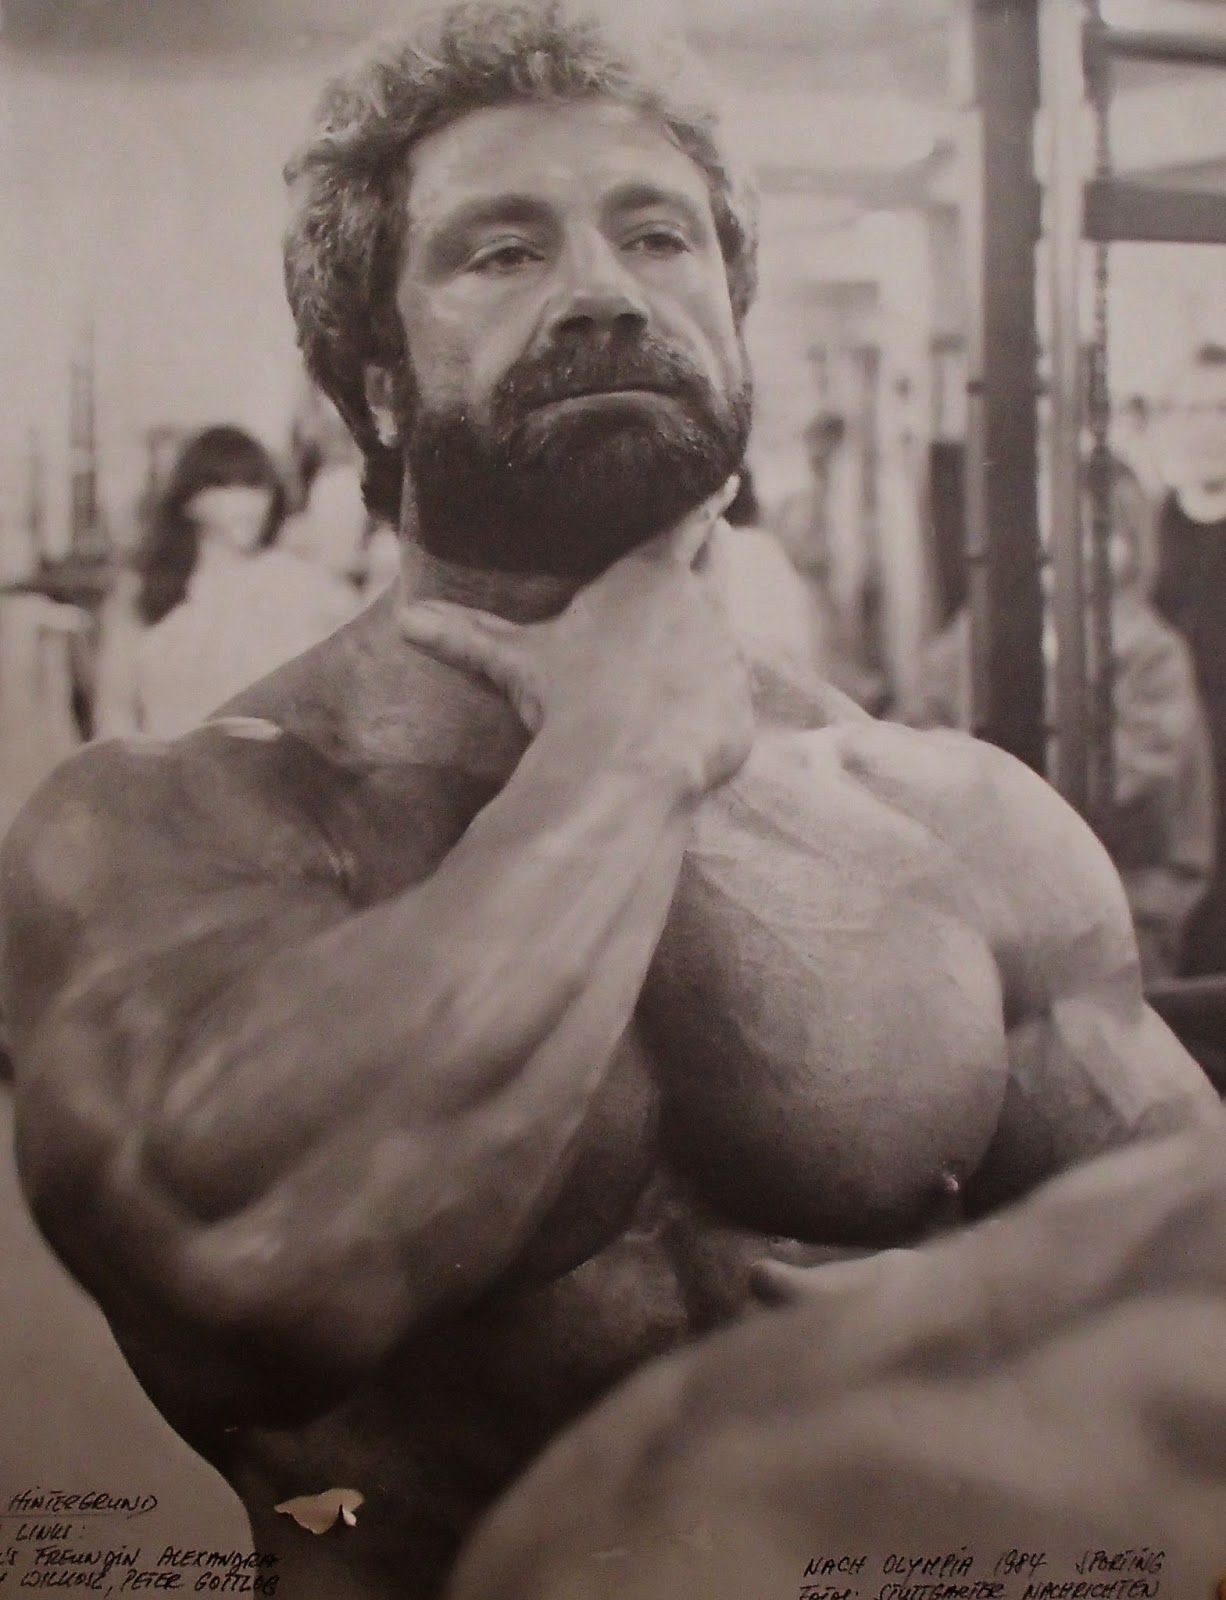 Time for some old school bodybuilding. The GORGEOUS muscle daddy ...